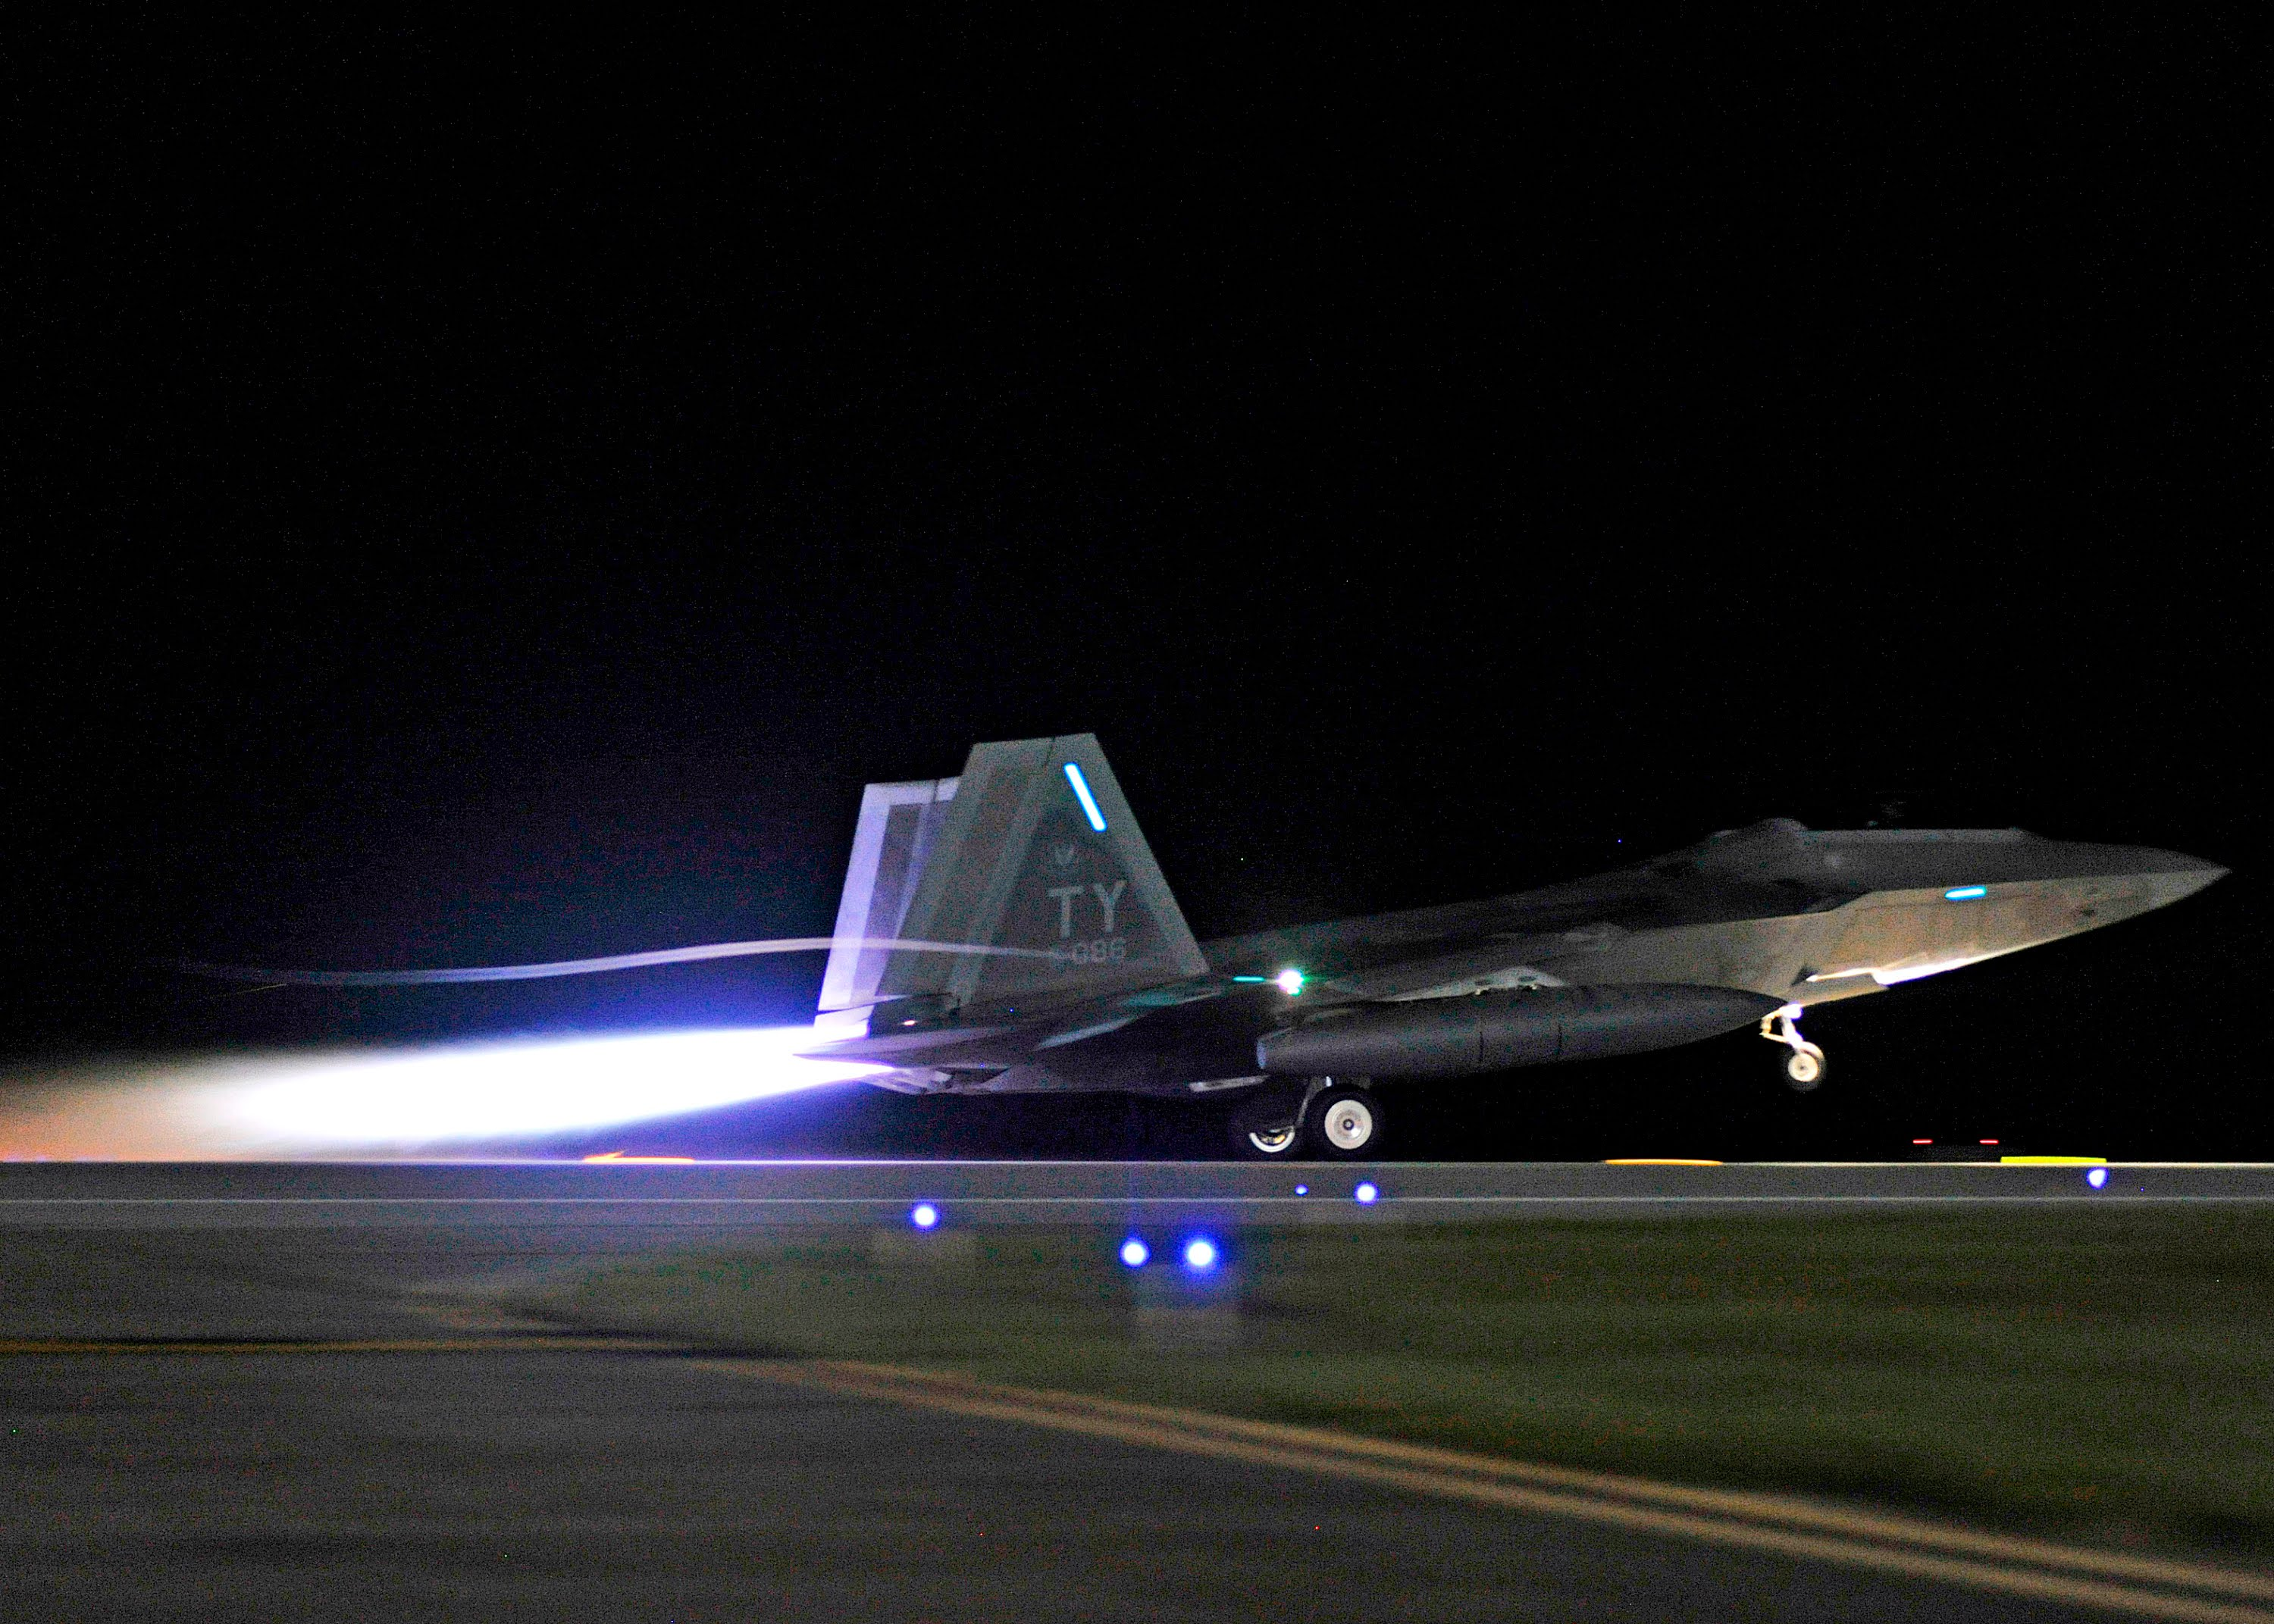 Magnificent F-22 Raptor Night Takeoff